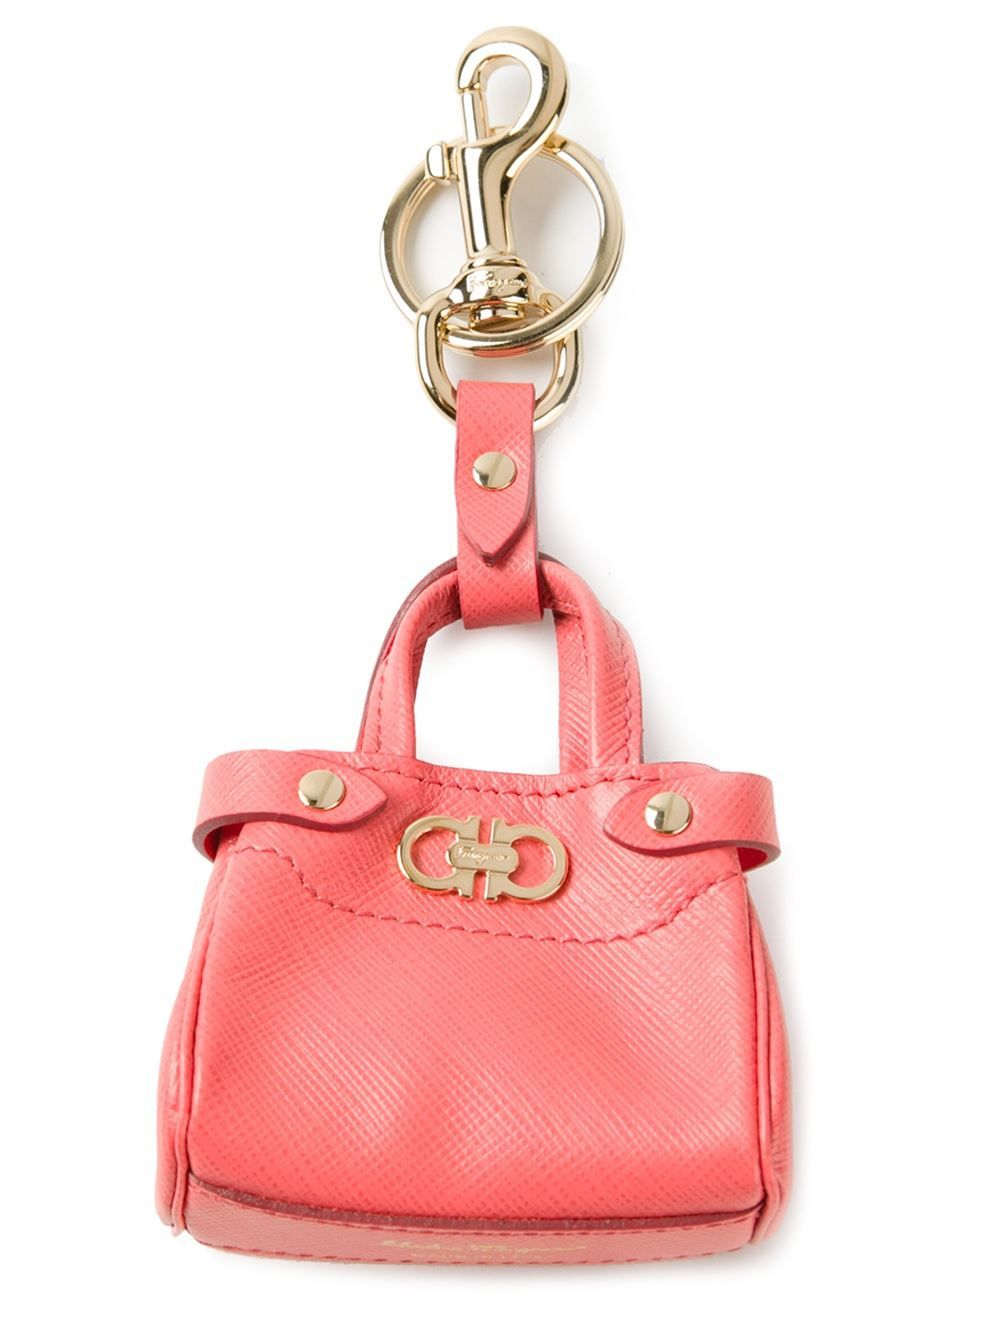 Pink leather purse key holder from Salvatore Ferragamo featuring gold-tone  hardware and a small logo purse. 2ac3b4df50437